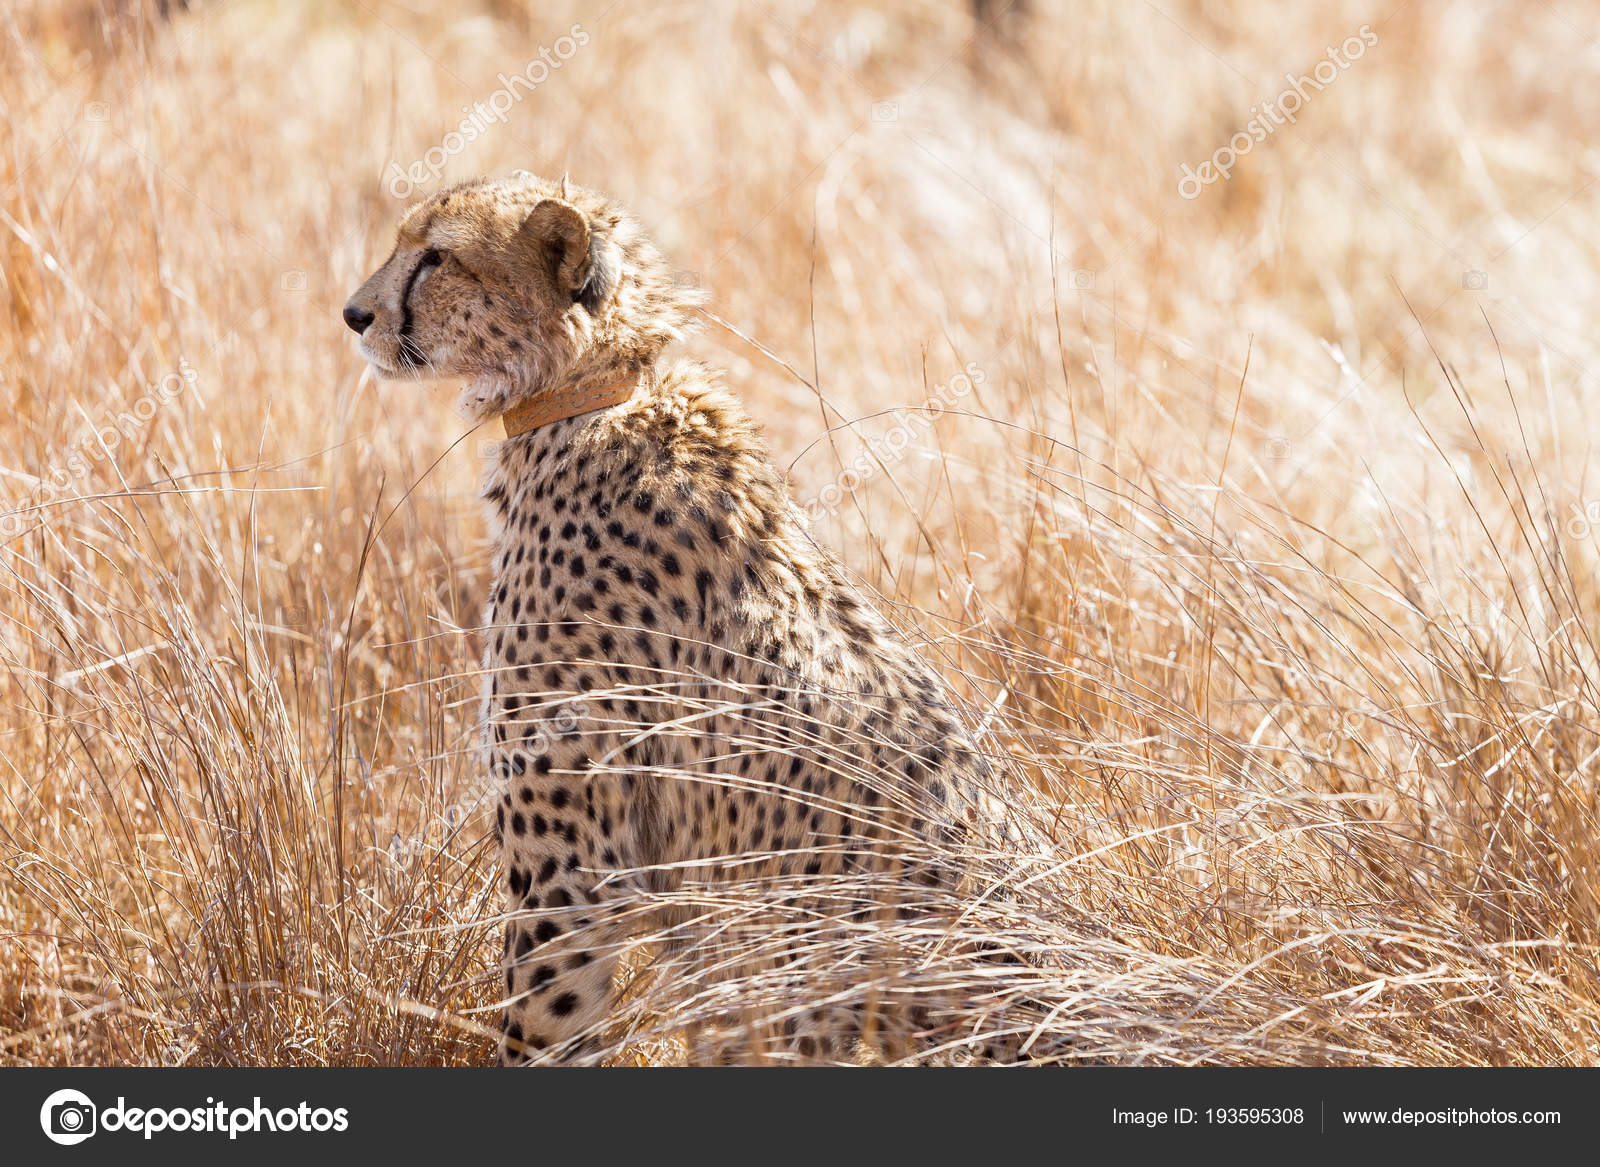 African Cheetah Sitting In Long Grass Stock Photo